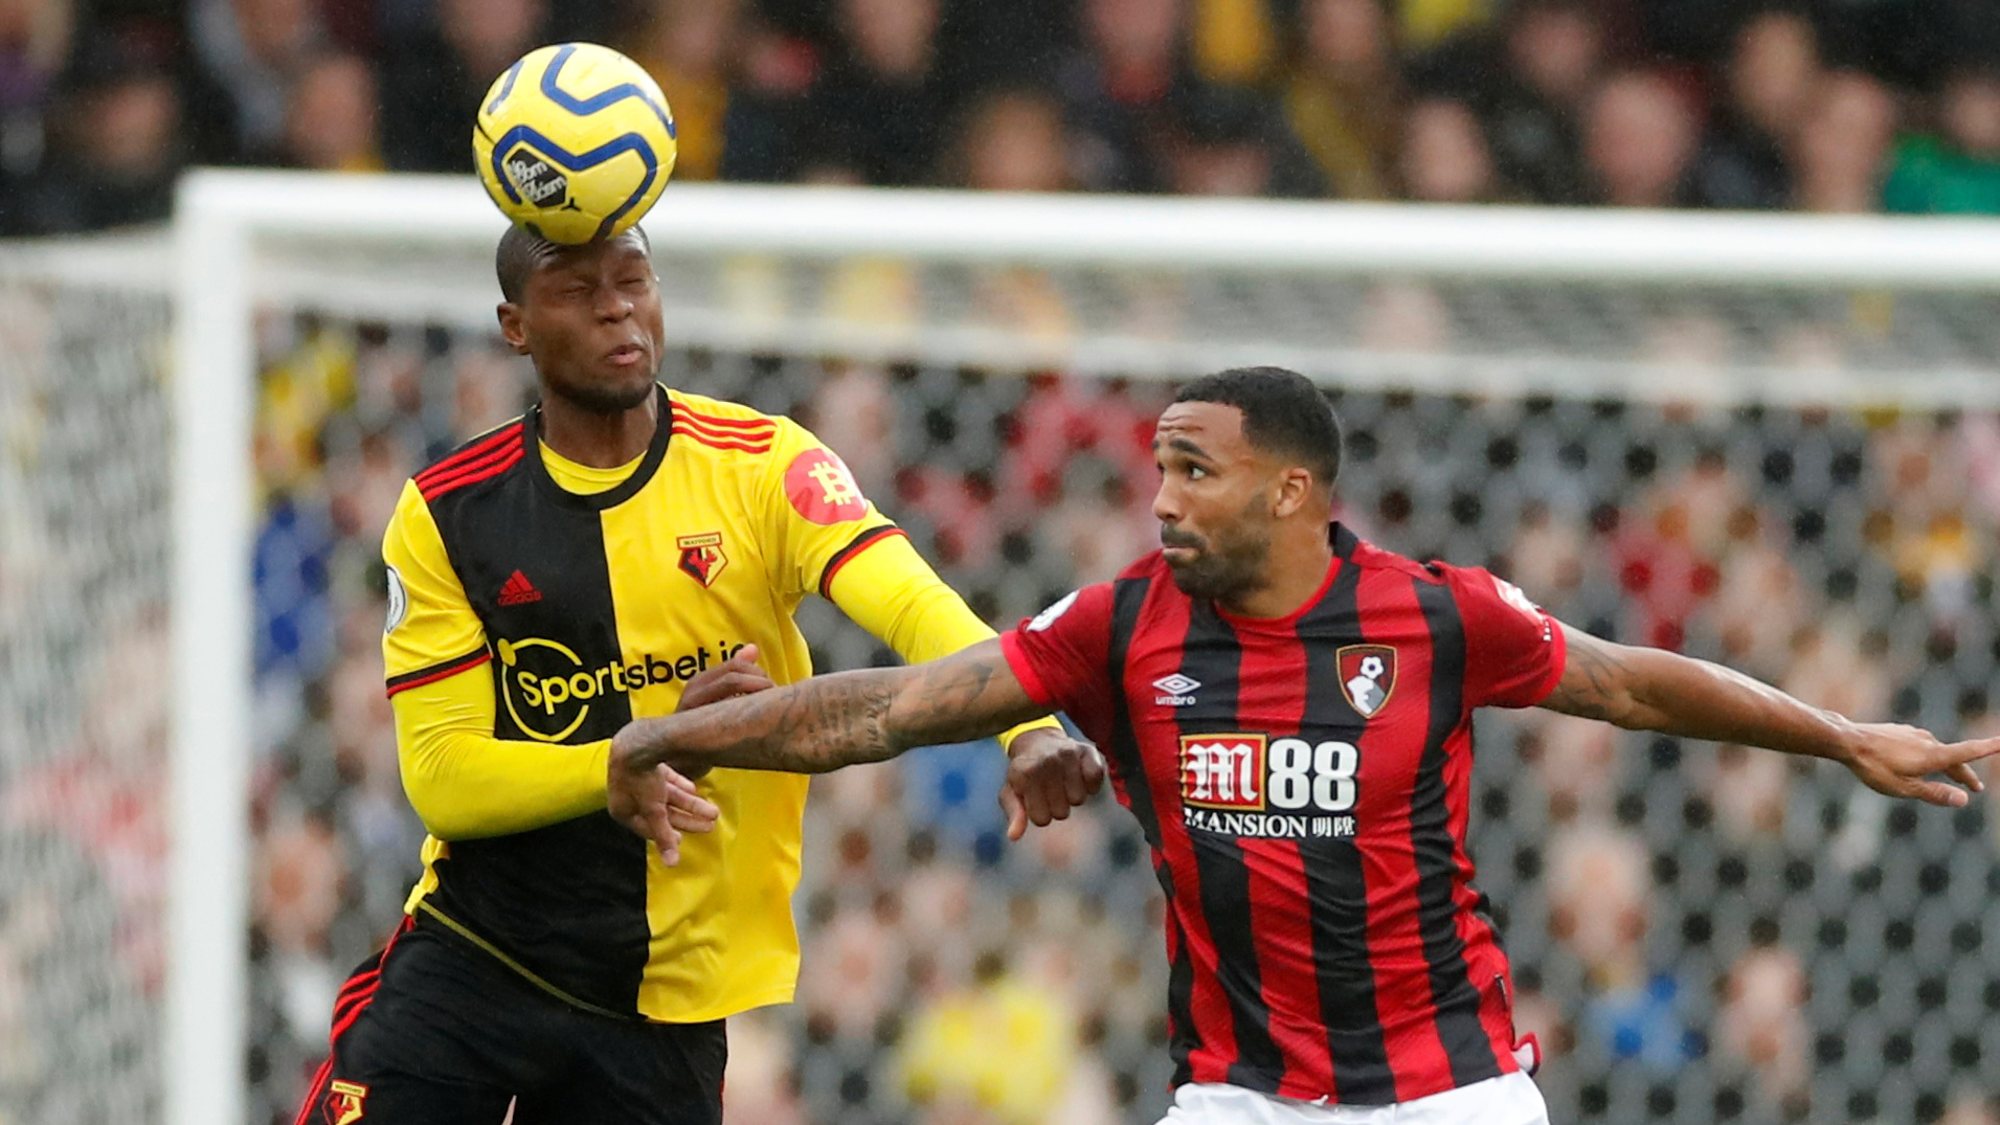 Sponsorship of Sport - Watford and Bournemouth sport gambling sponsors on their football kits